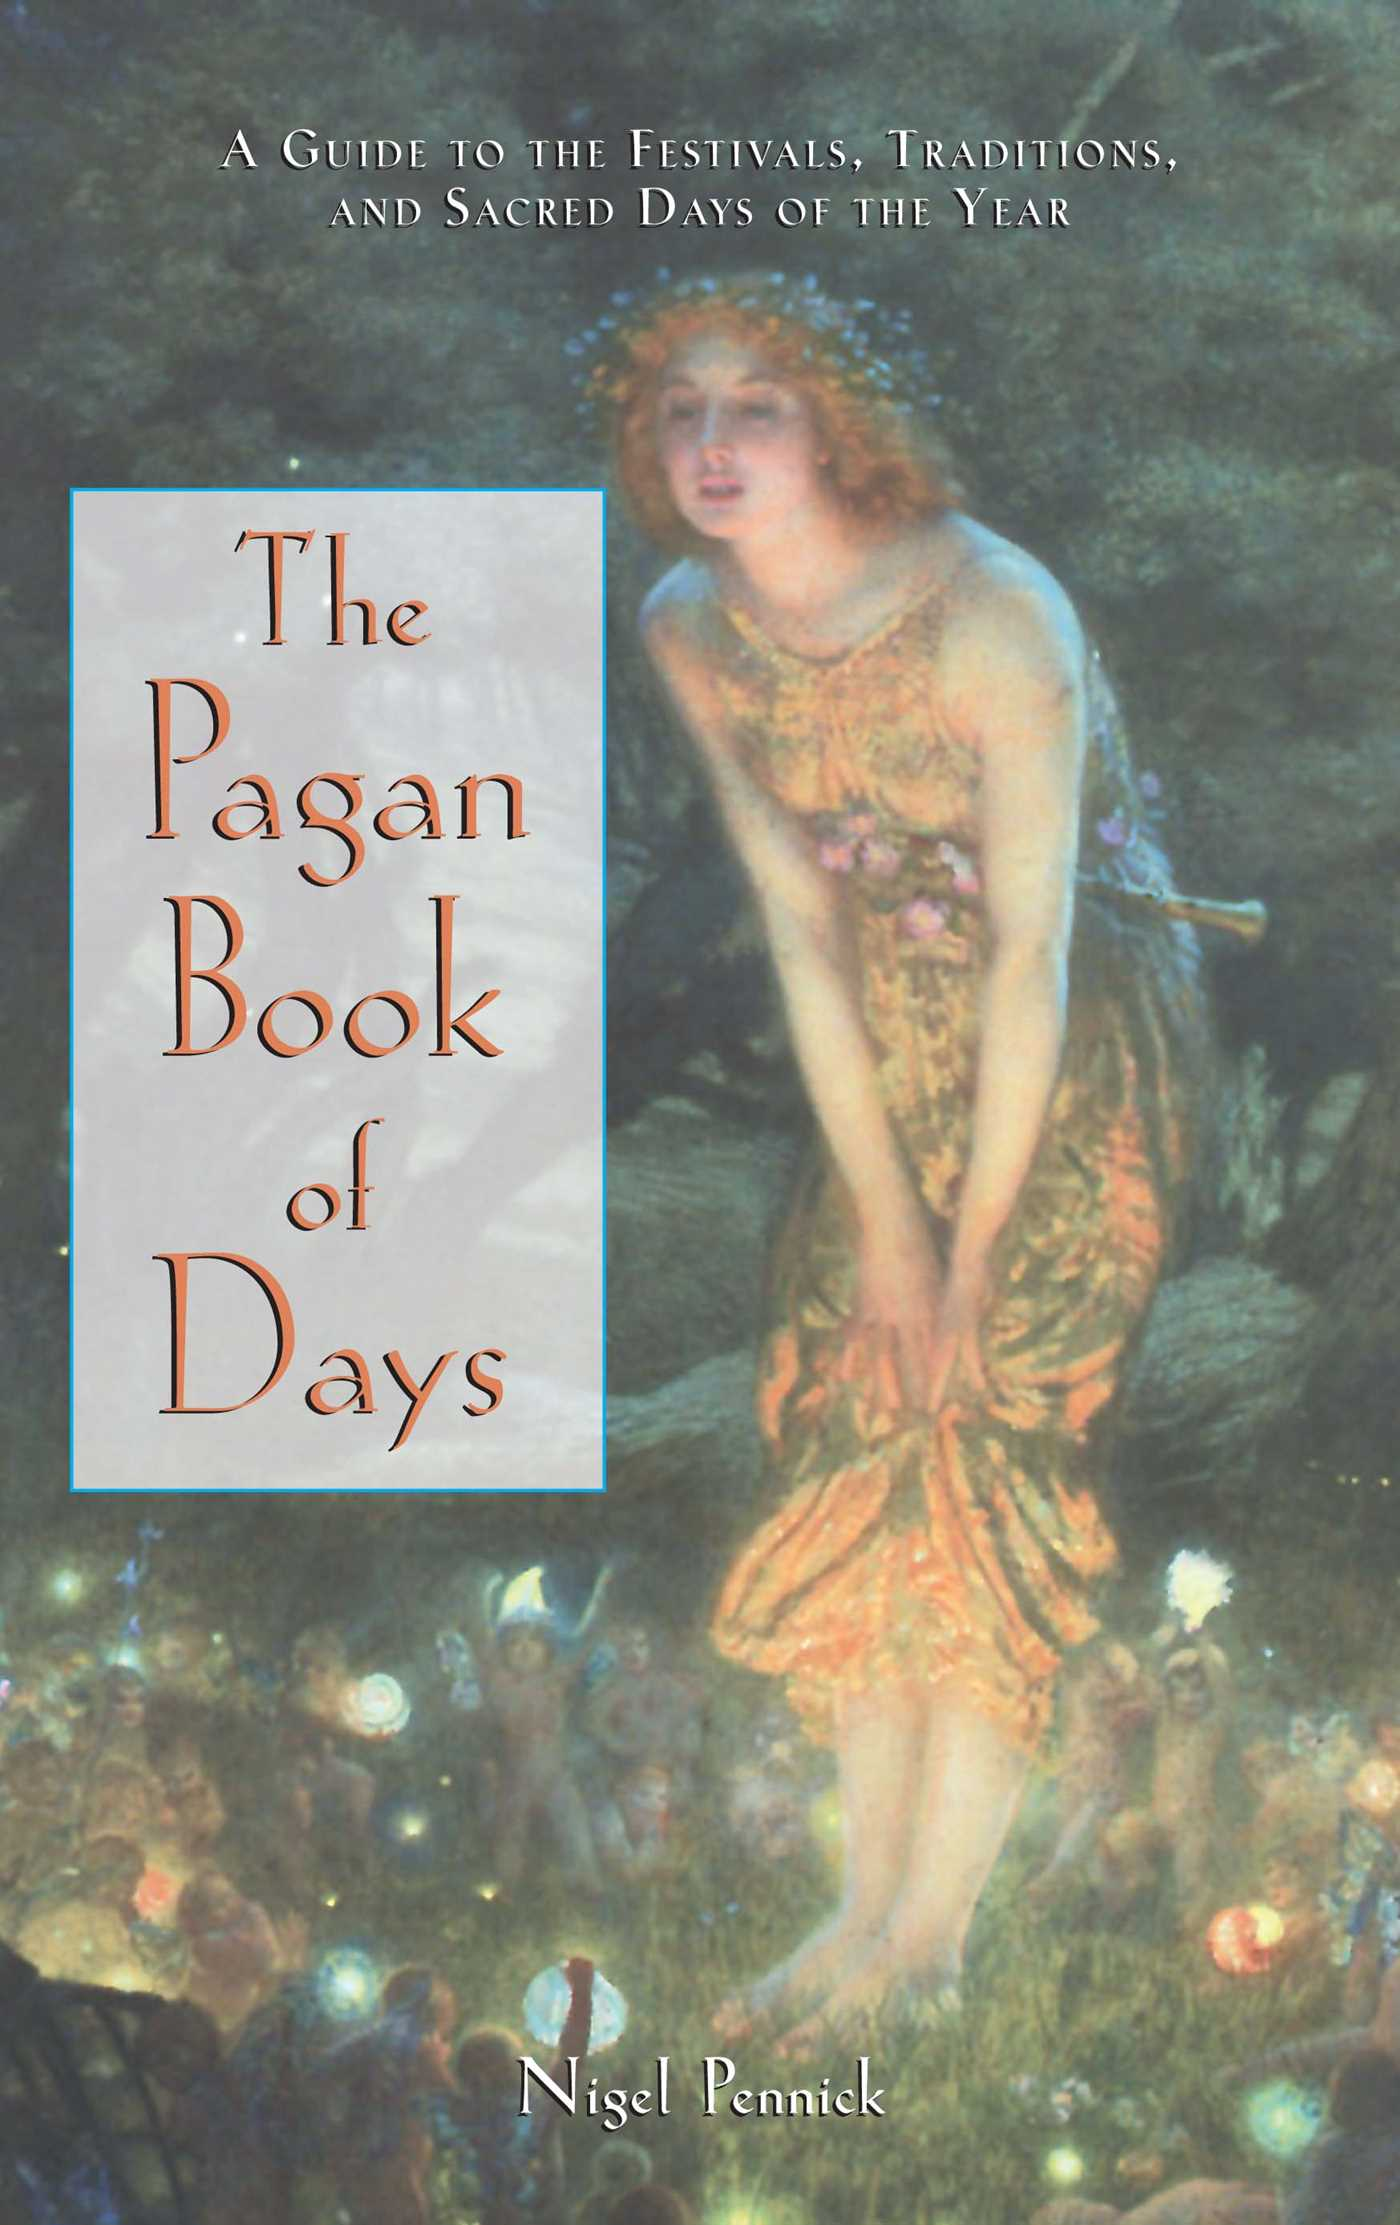 The-pagan-book-of-days-9780892818679_hr